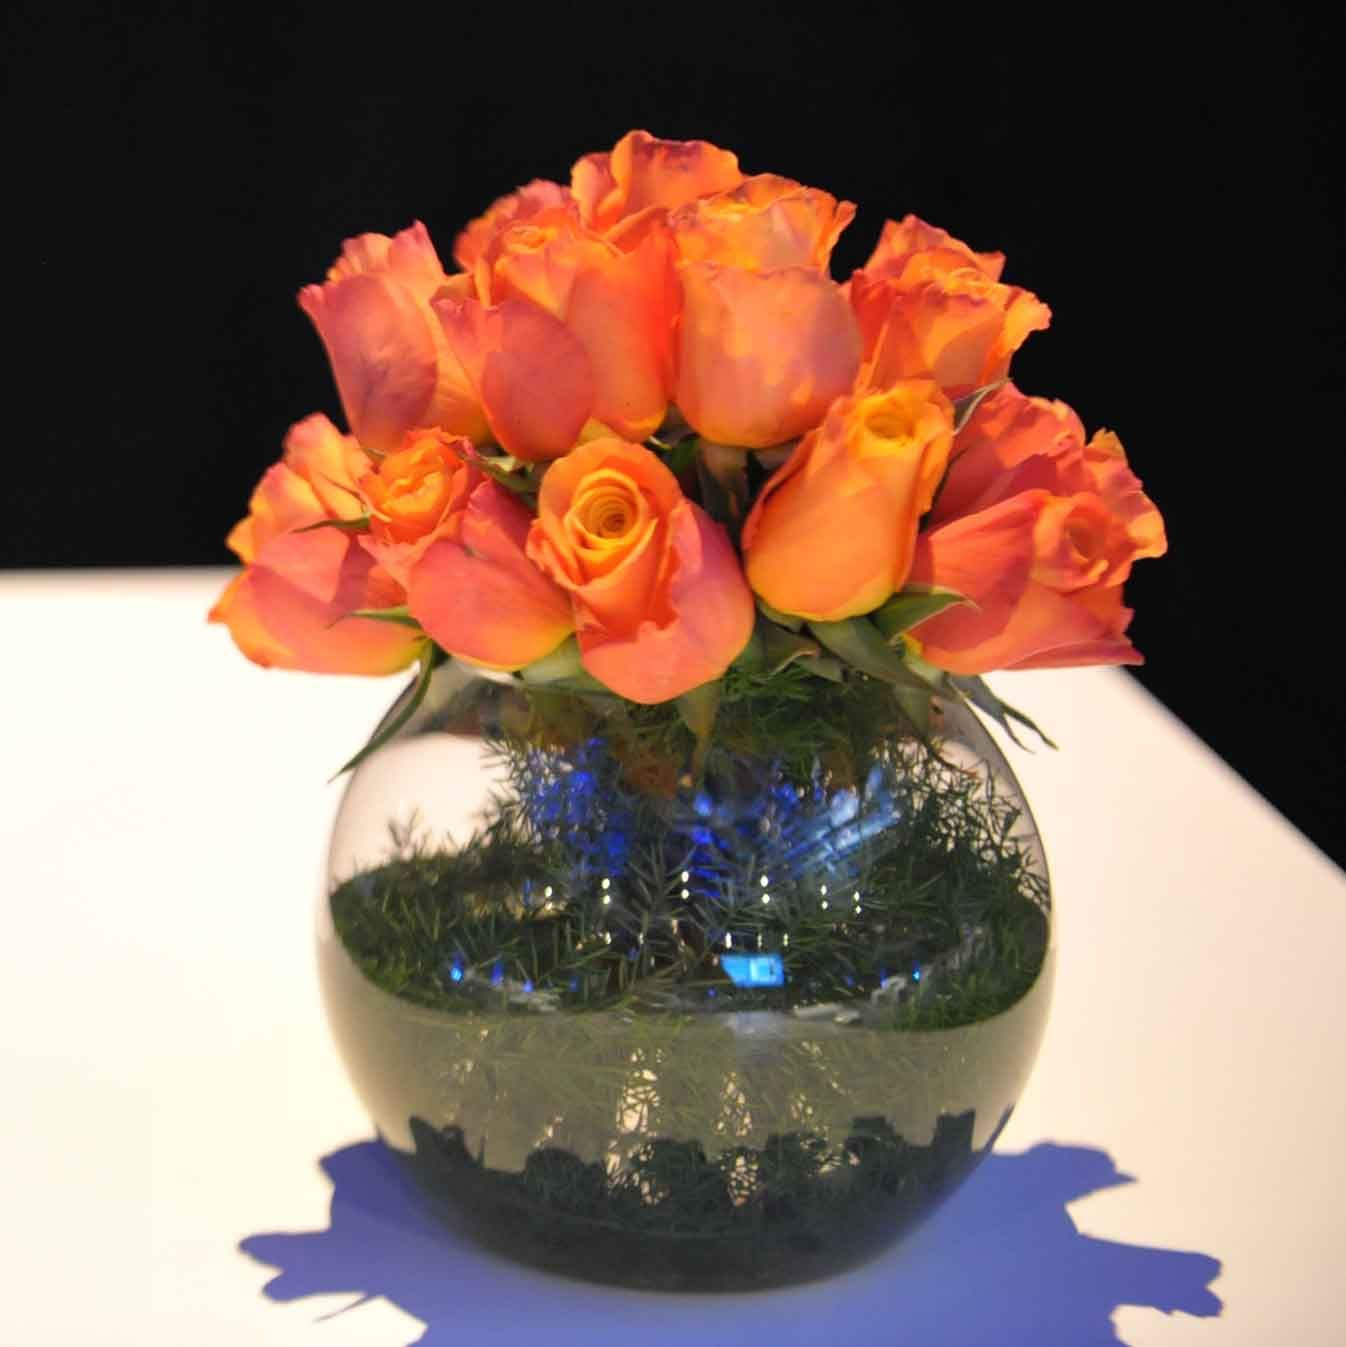 Cobalt Blue Vase Centerpieces Of 8 Od orange Rose Foliage Lined Gold Fish Bowl orange Flower Regarding 8 Od orange Rose Foliage Lined Gold Fish Bowl